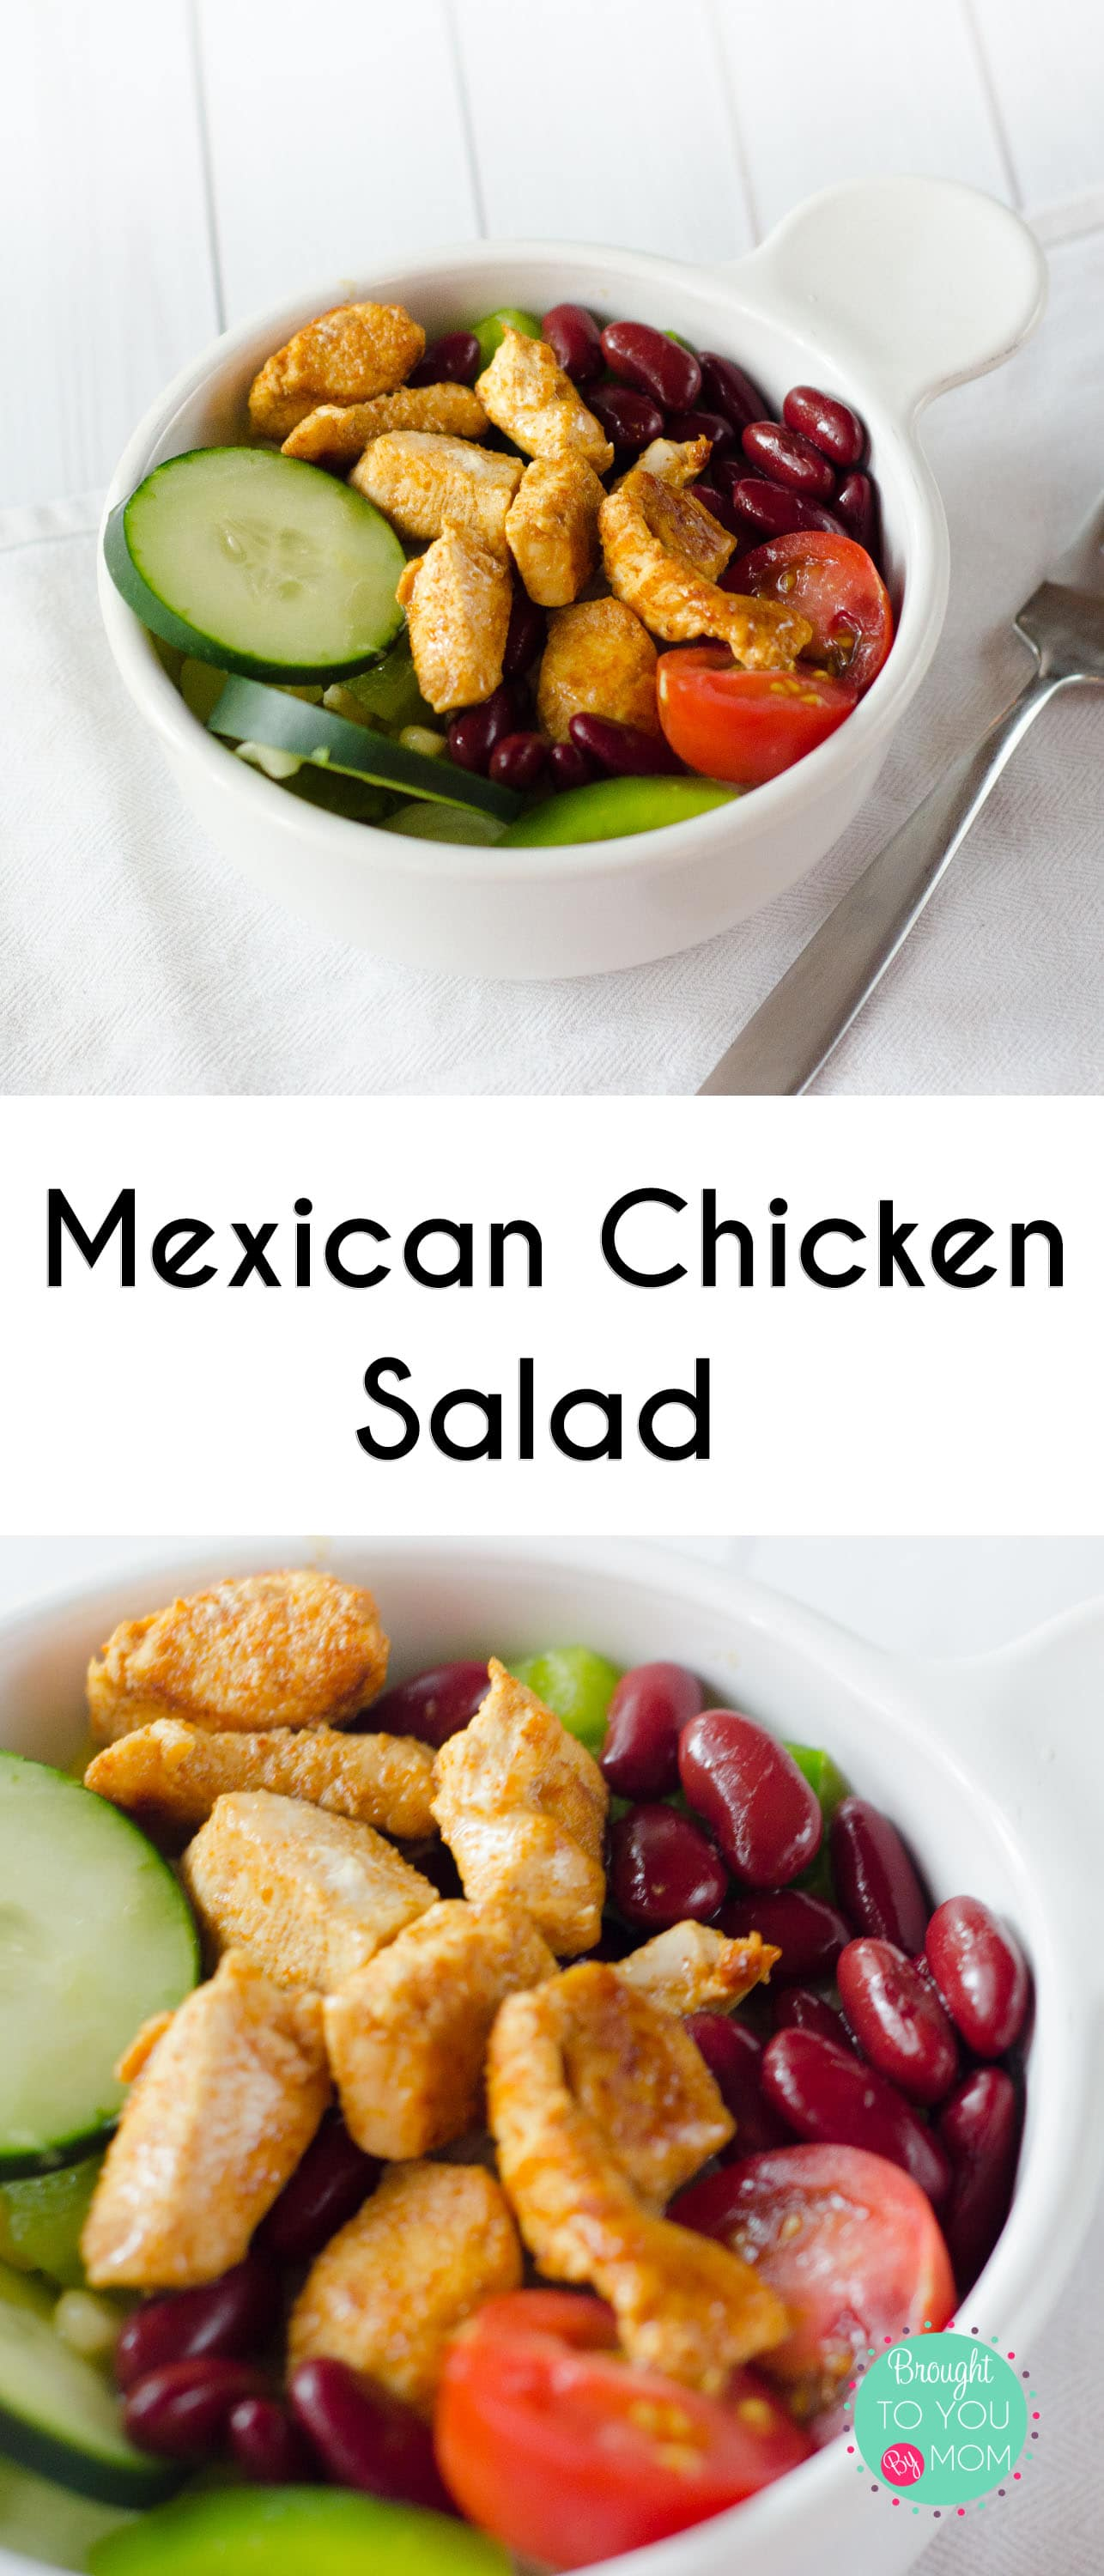 (ad) Mexican Chicken Salad for a quick and healthier meal choice. Make this Mexican Chicken Salad recipe in minutes. It can also make a great Chicken Taco Salad recipe by adding a few tortilla chips. Mexican Chicken Salad or Chicken Taco Salad for a busy day meal. #SWBeans #IC #salad #chicken #quickrecipe #fastrecipe #simplerecipe